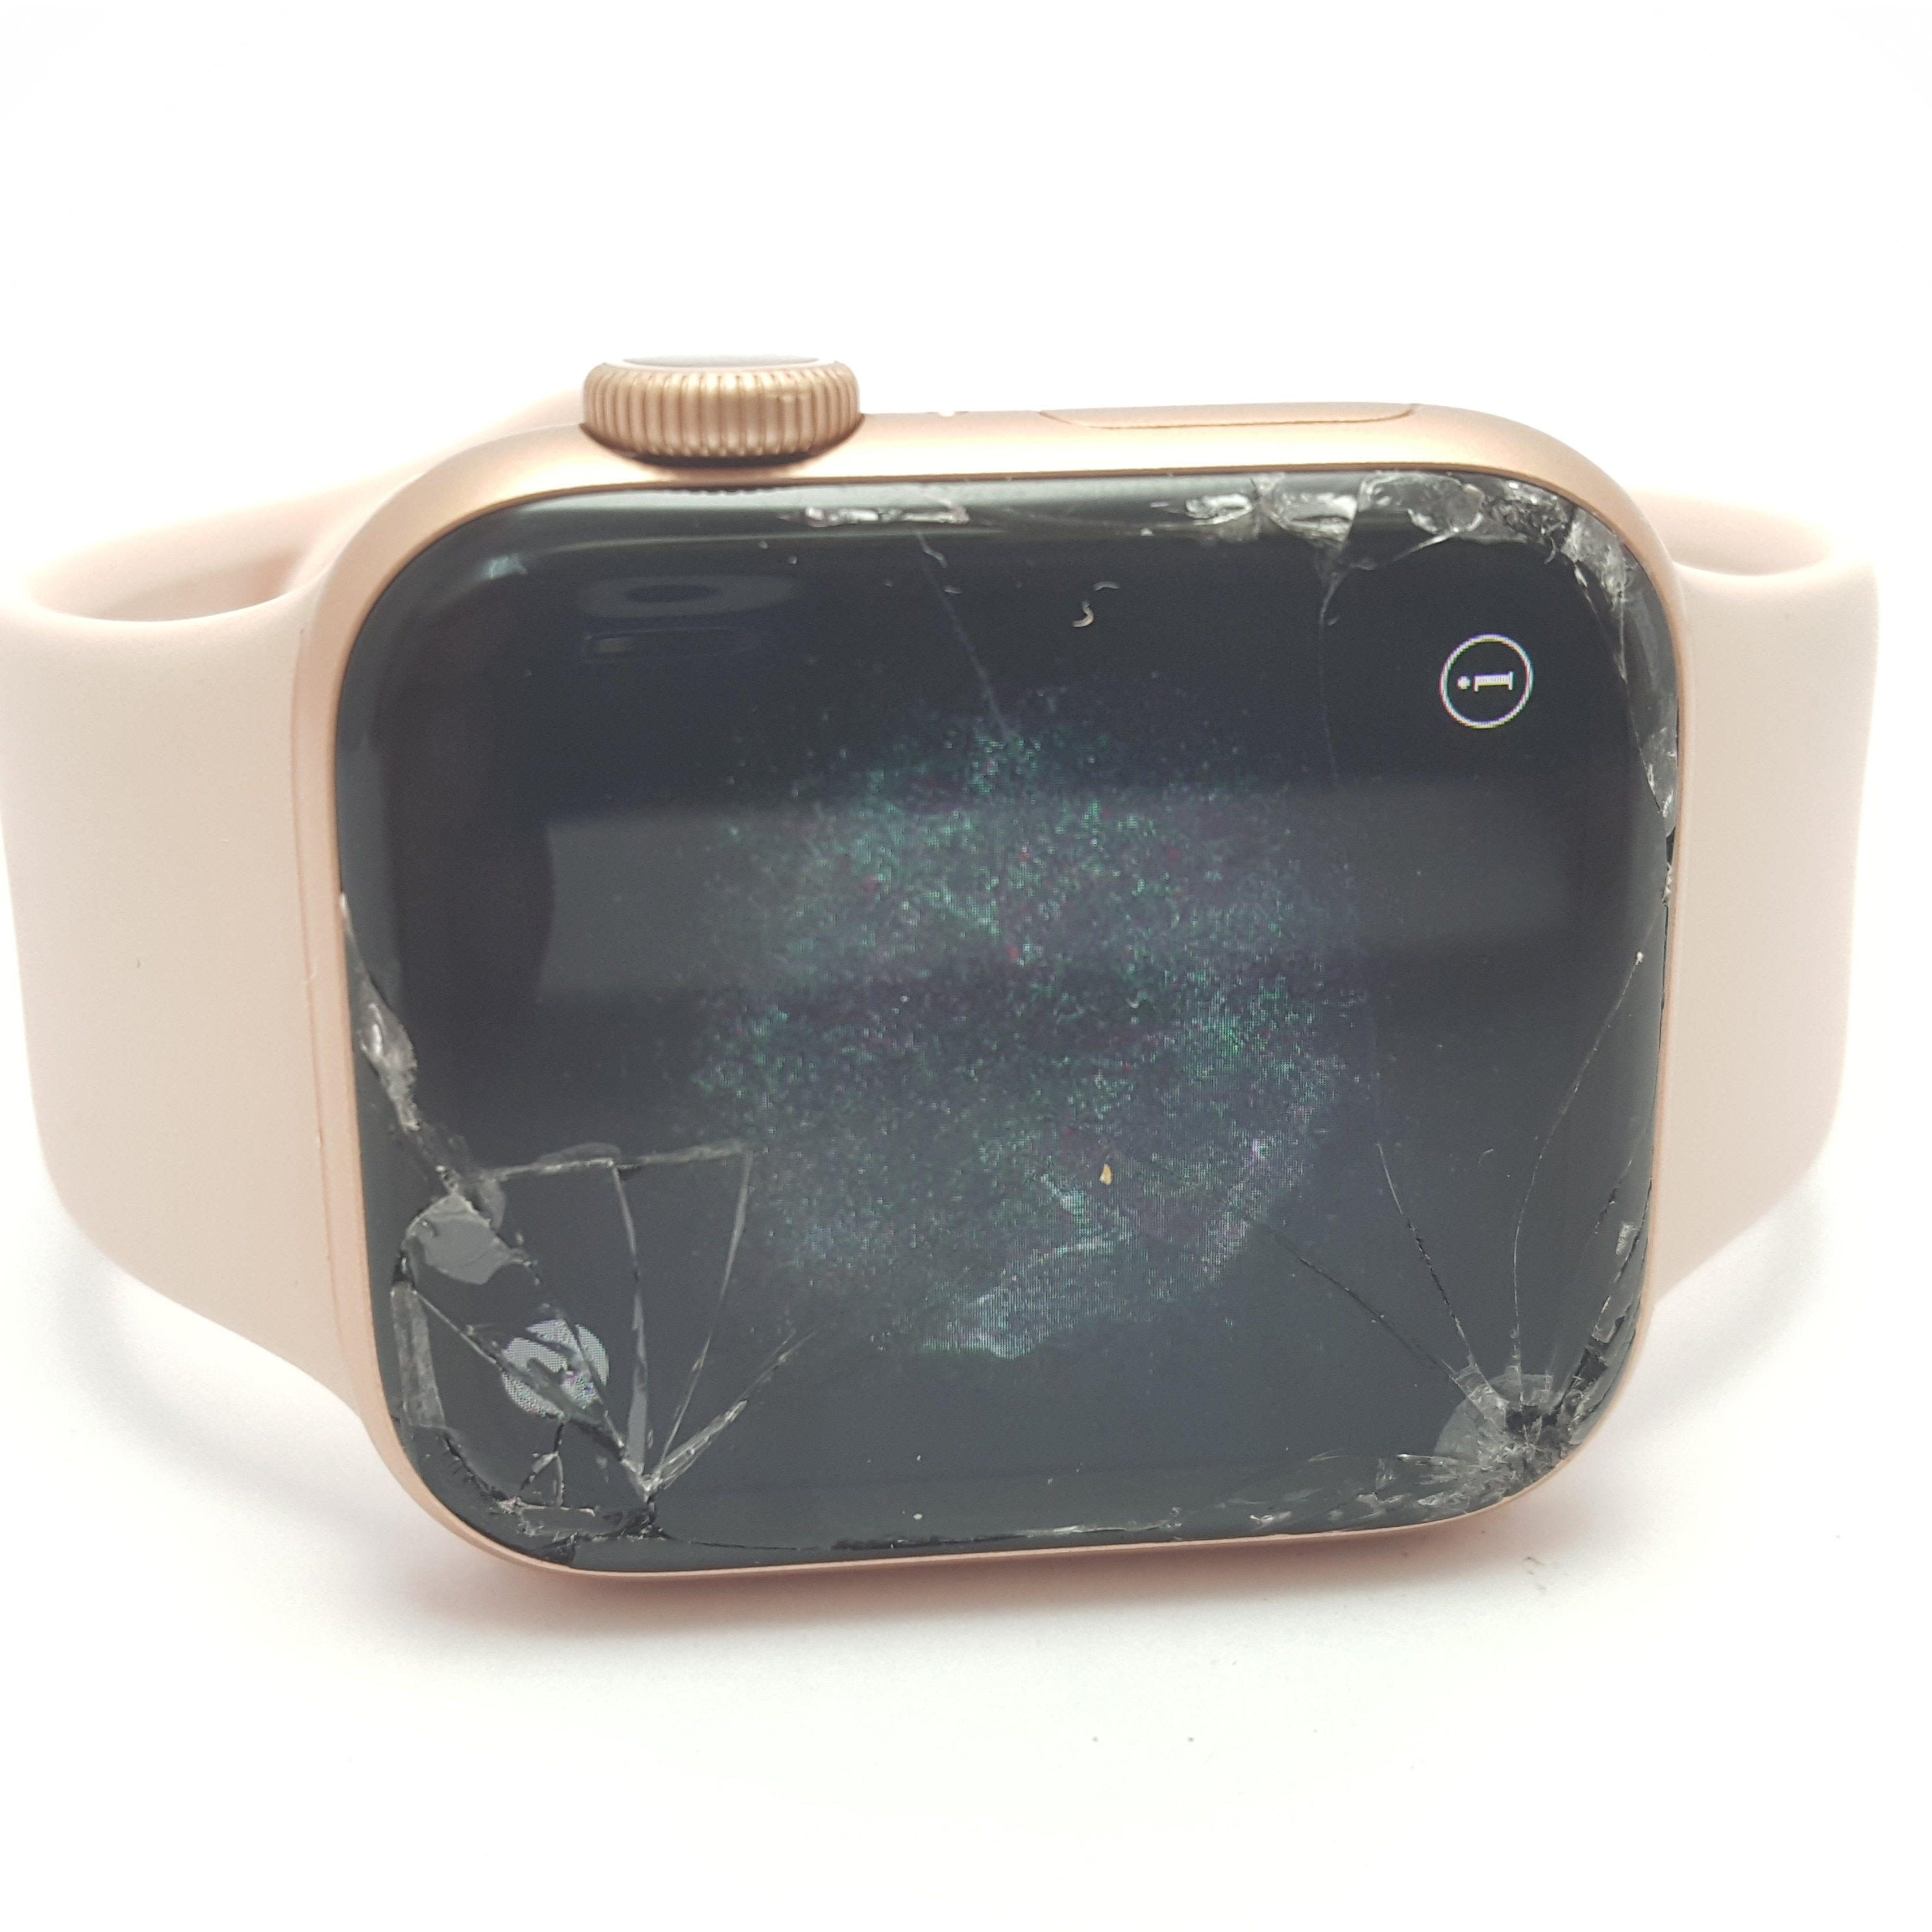 Apple Watch Series 5 Rose Gold 40mm – Cracked Screen – Touch Works!